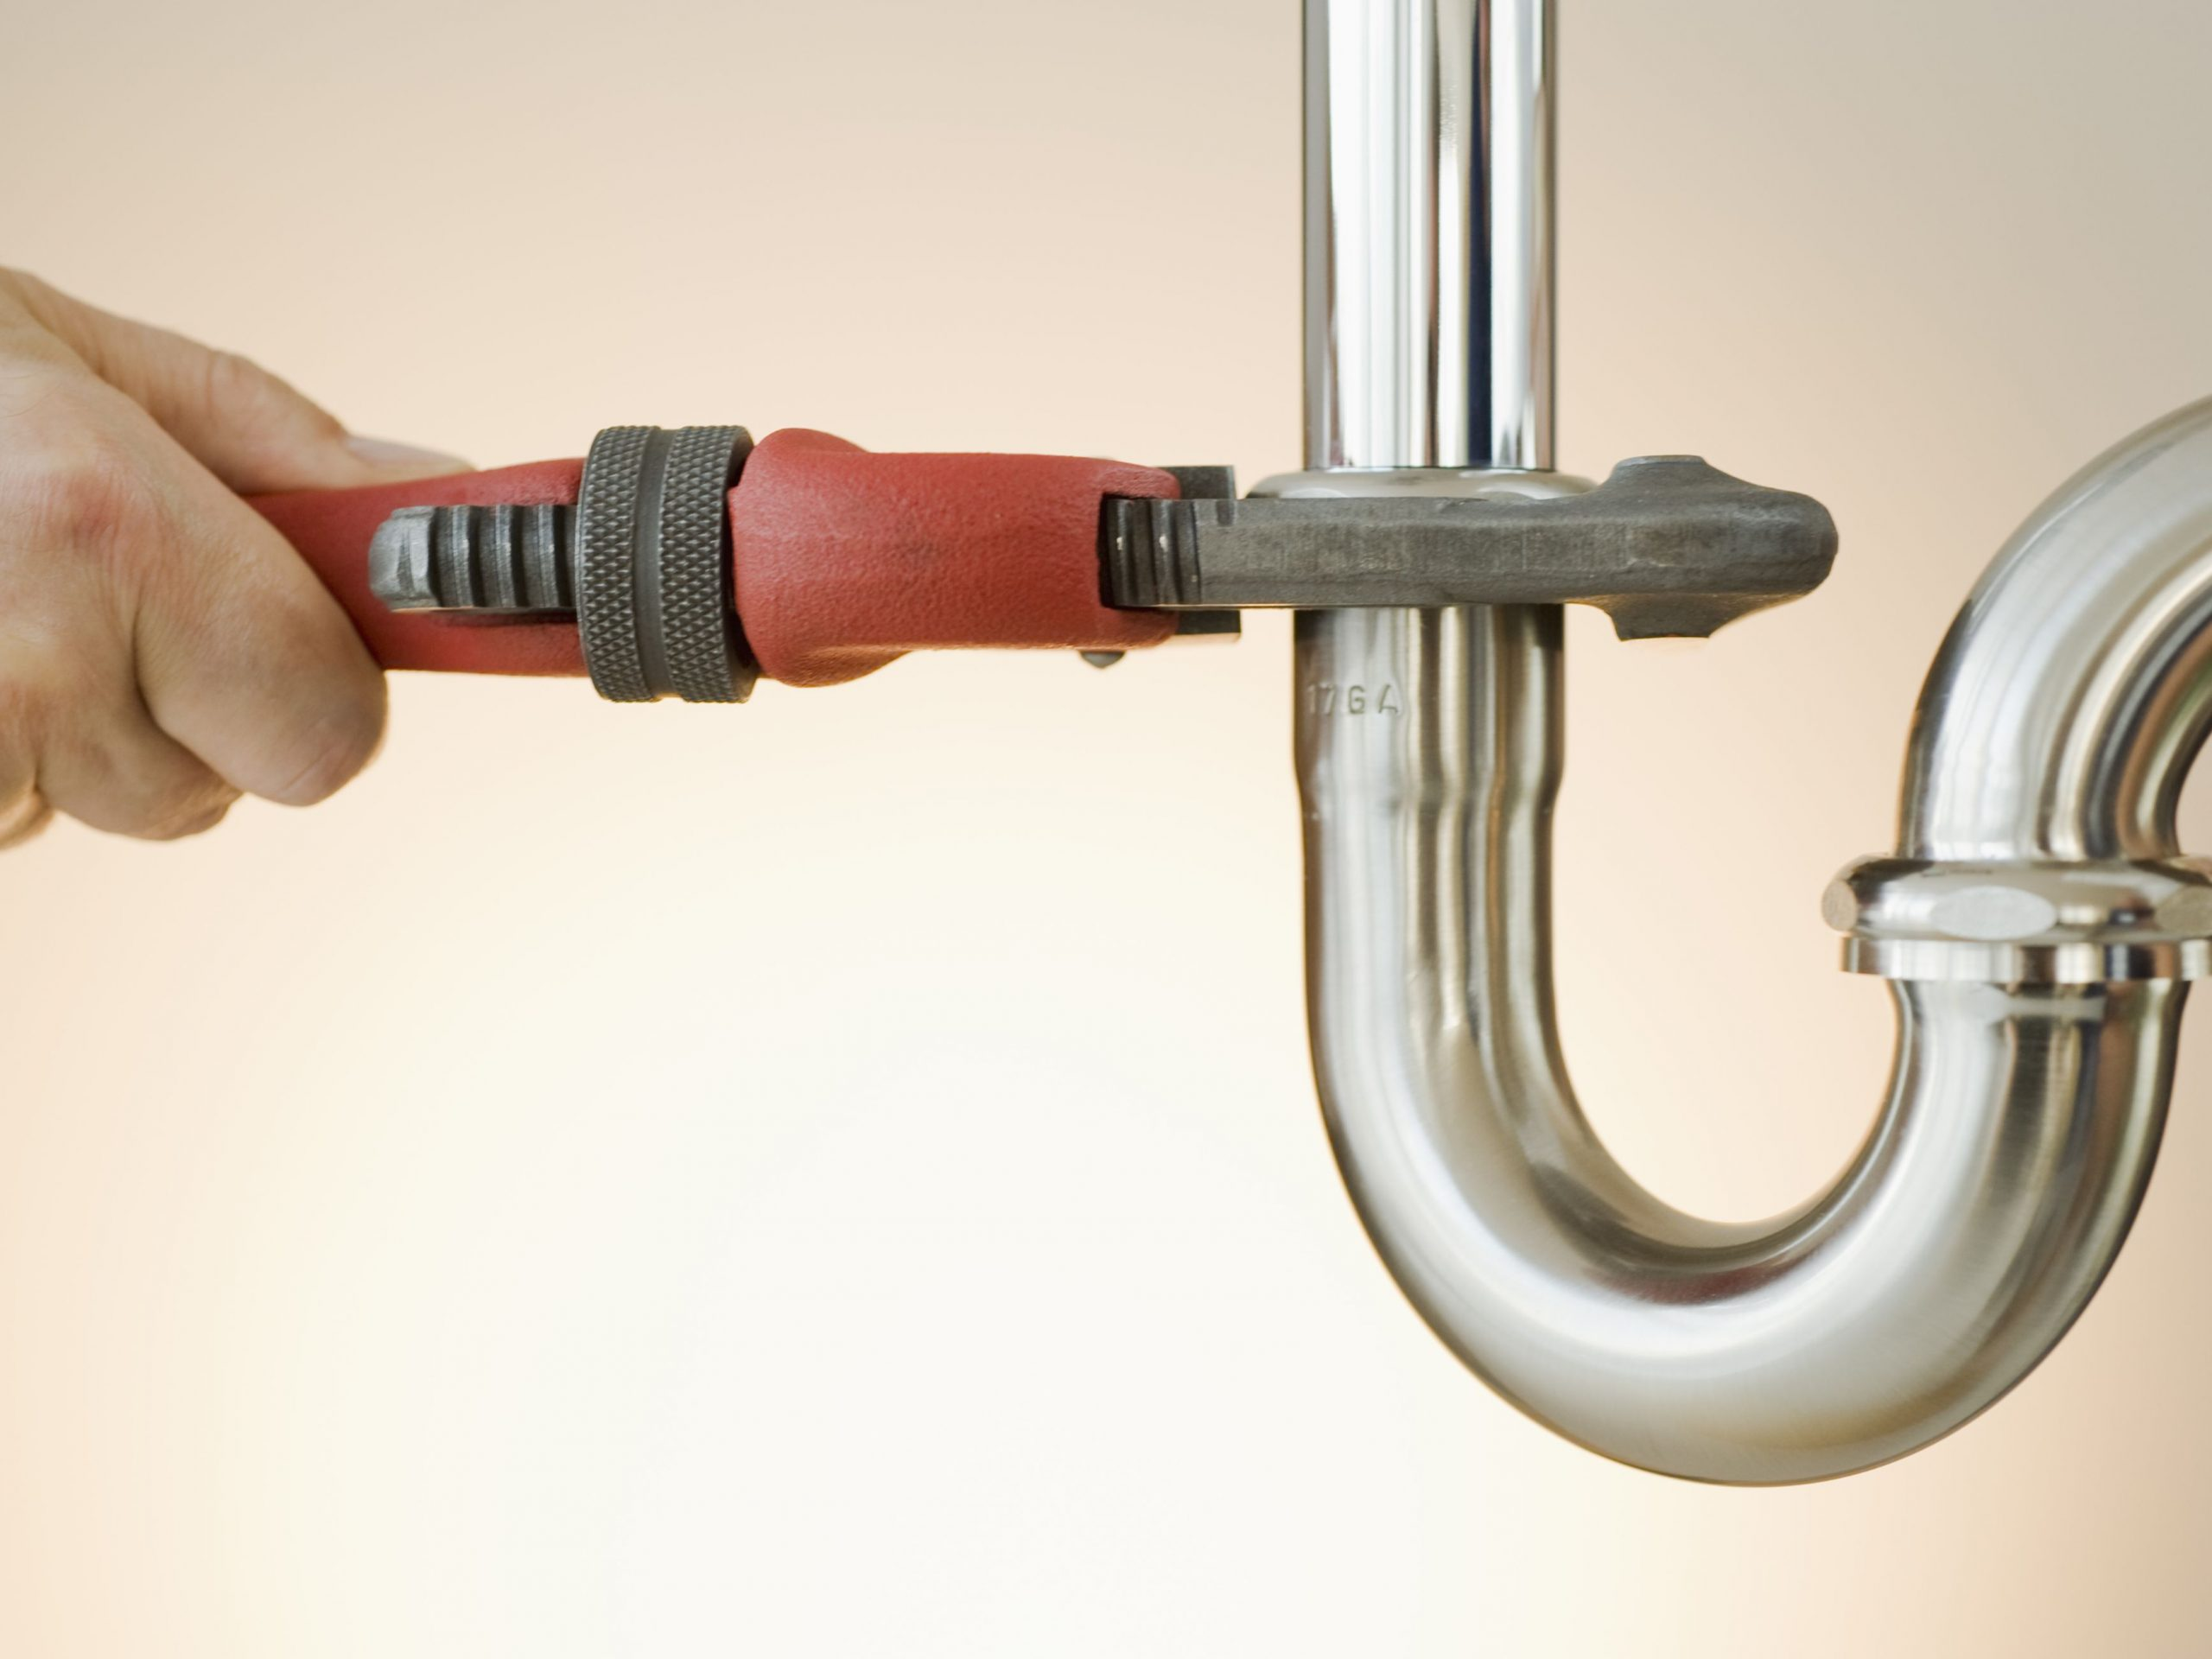 How To Pick the Best Valve for Your Home Pipes